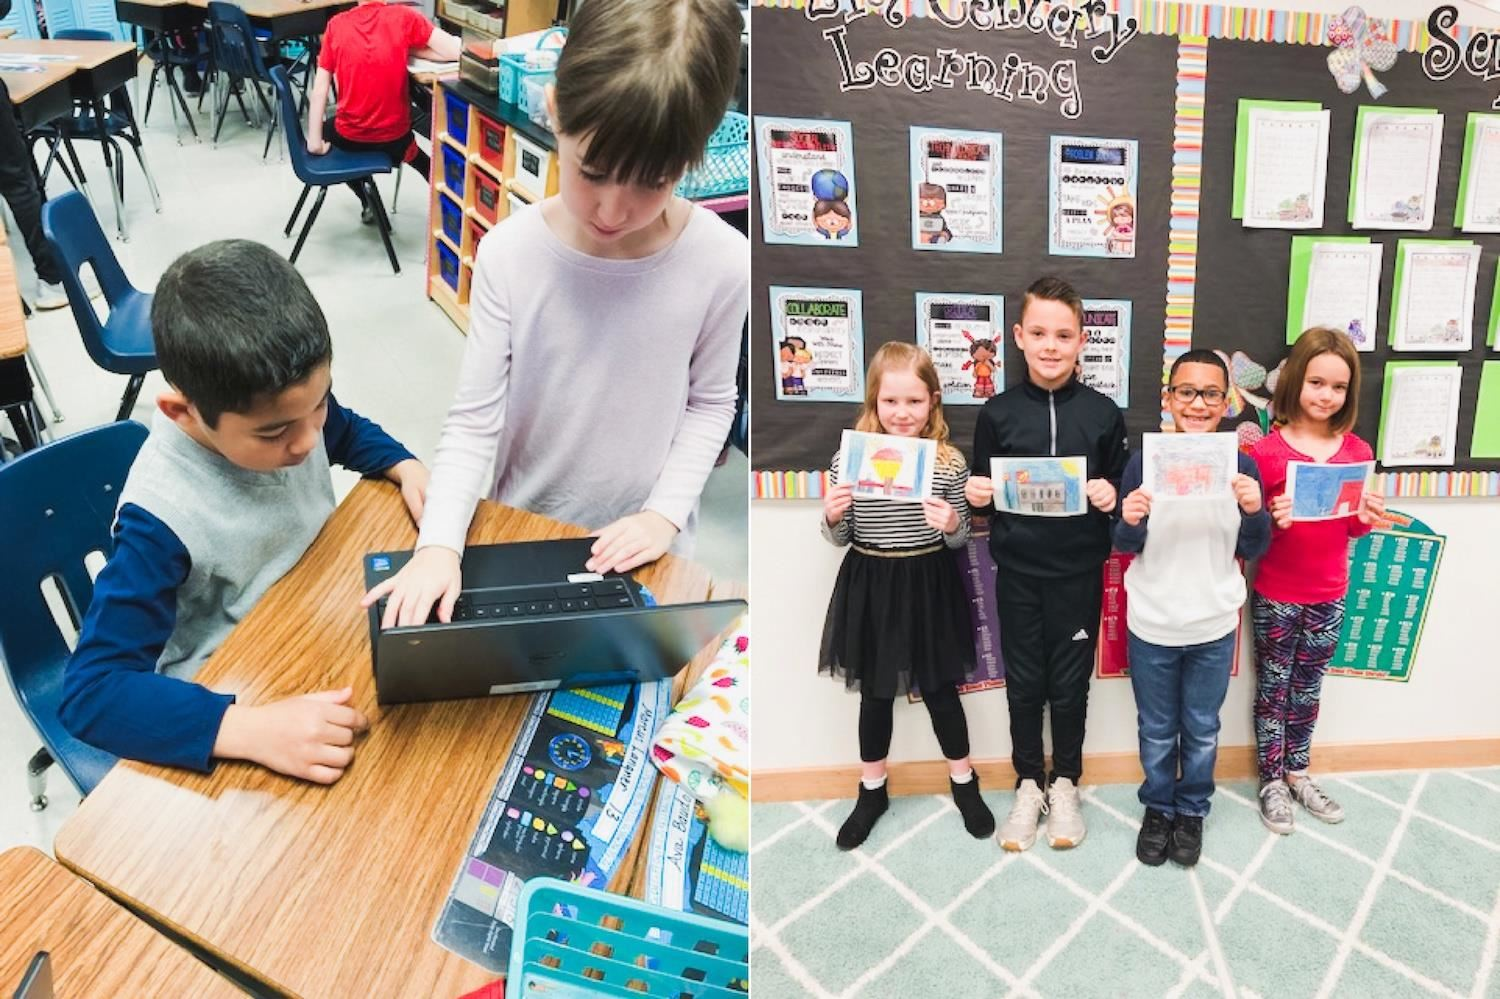 Students share laptop and hold up artwork postcards